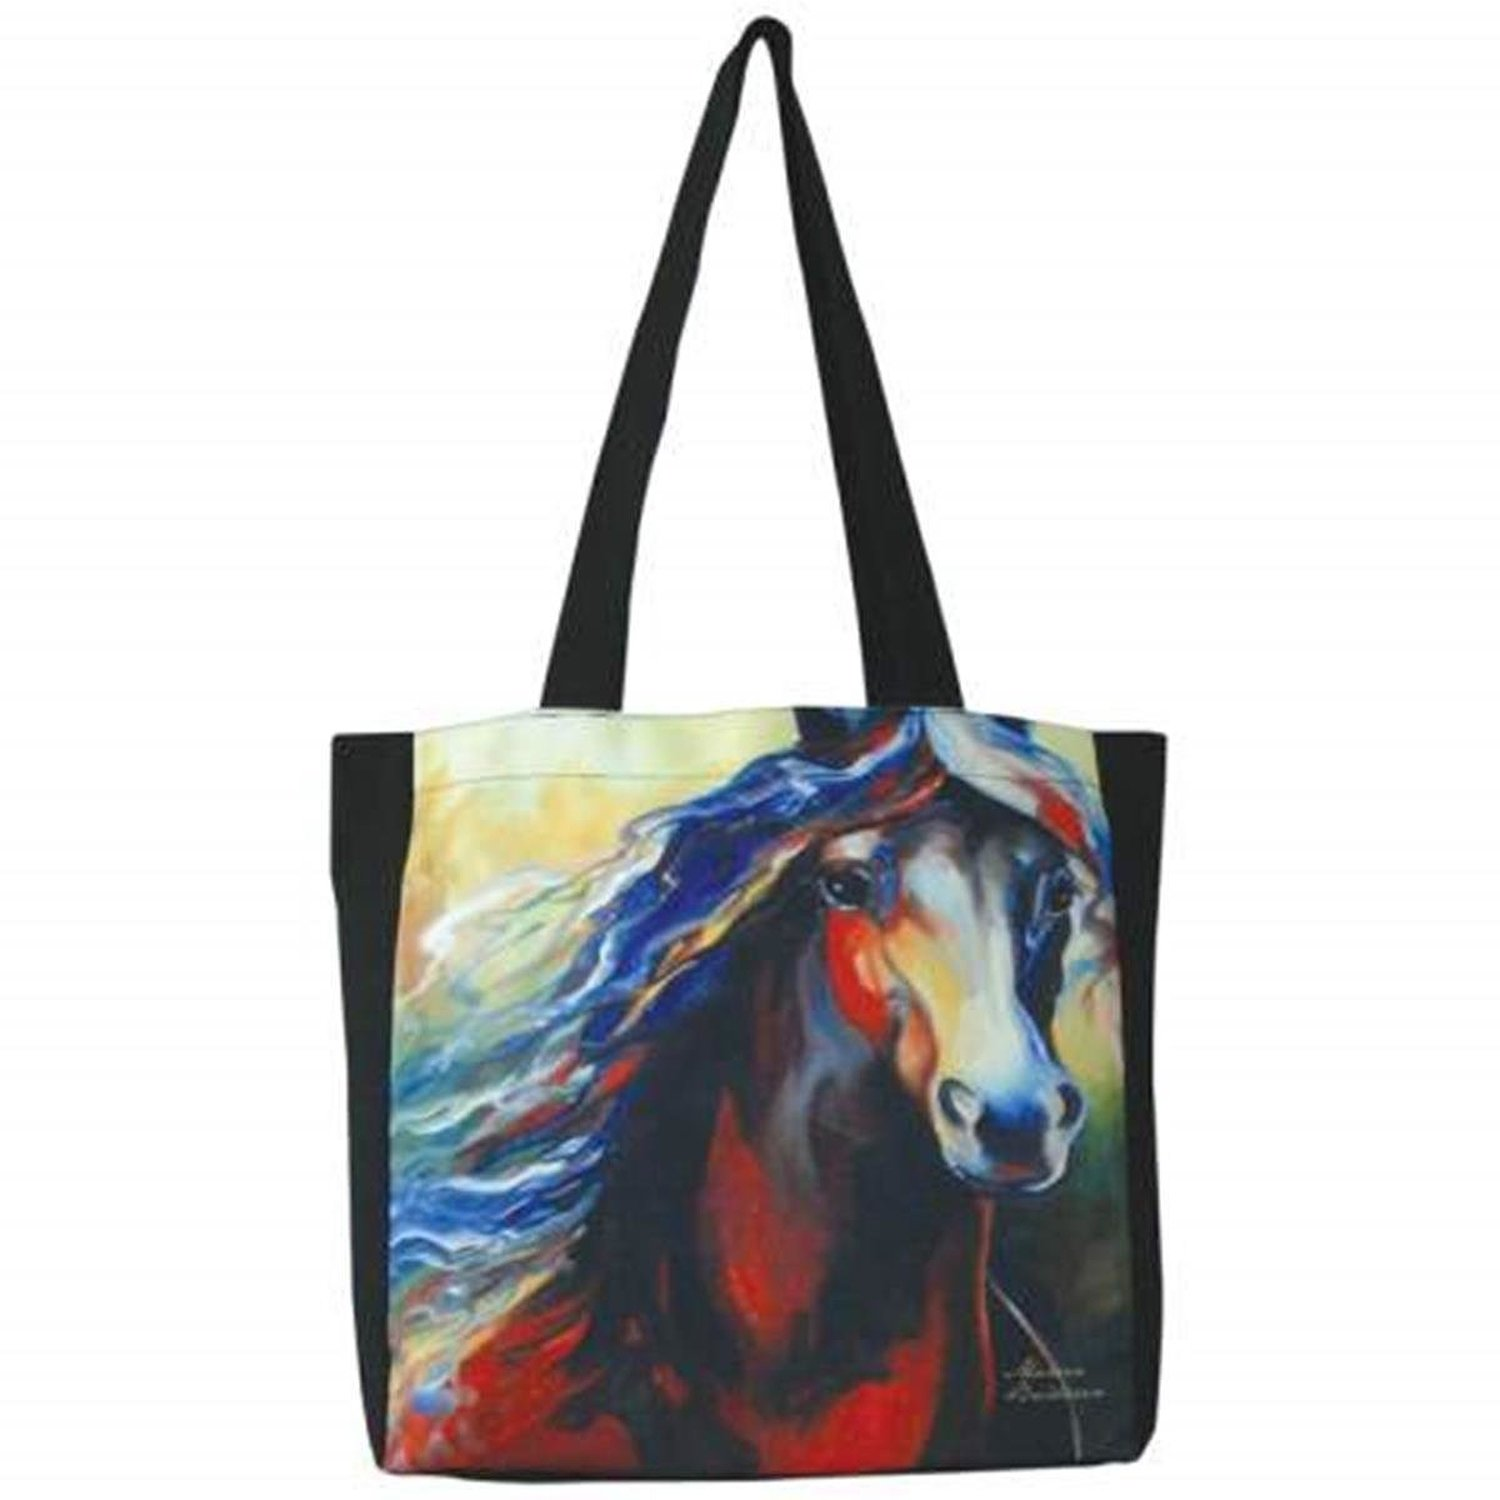 13 x 13 Inch Equus Equine Theme Black Tote Bag with Brown Stallion